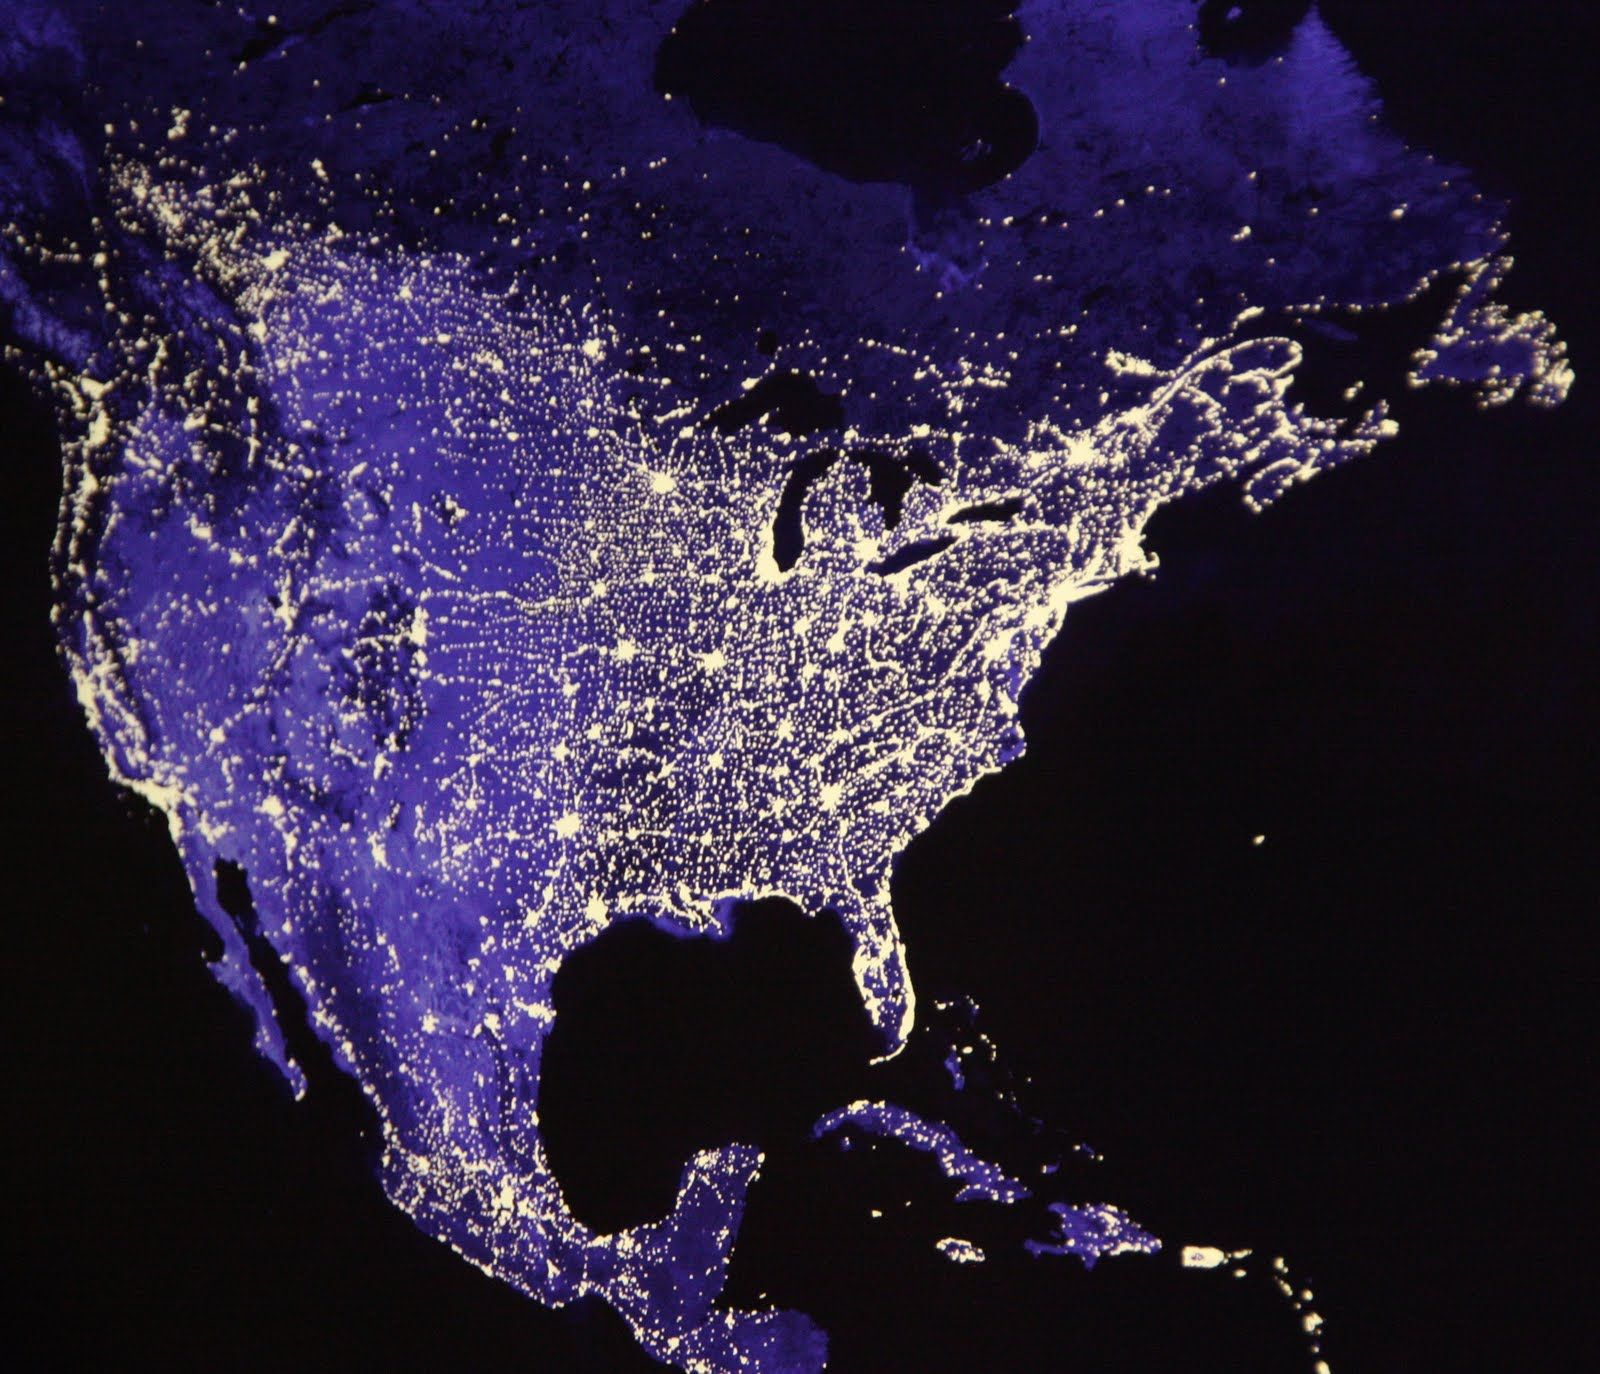 can you find the united states on a map North America at night | Stars and moon, Rocks and crystals